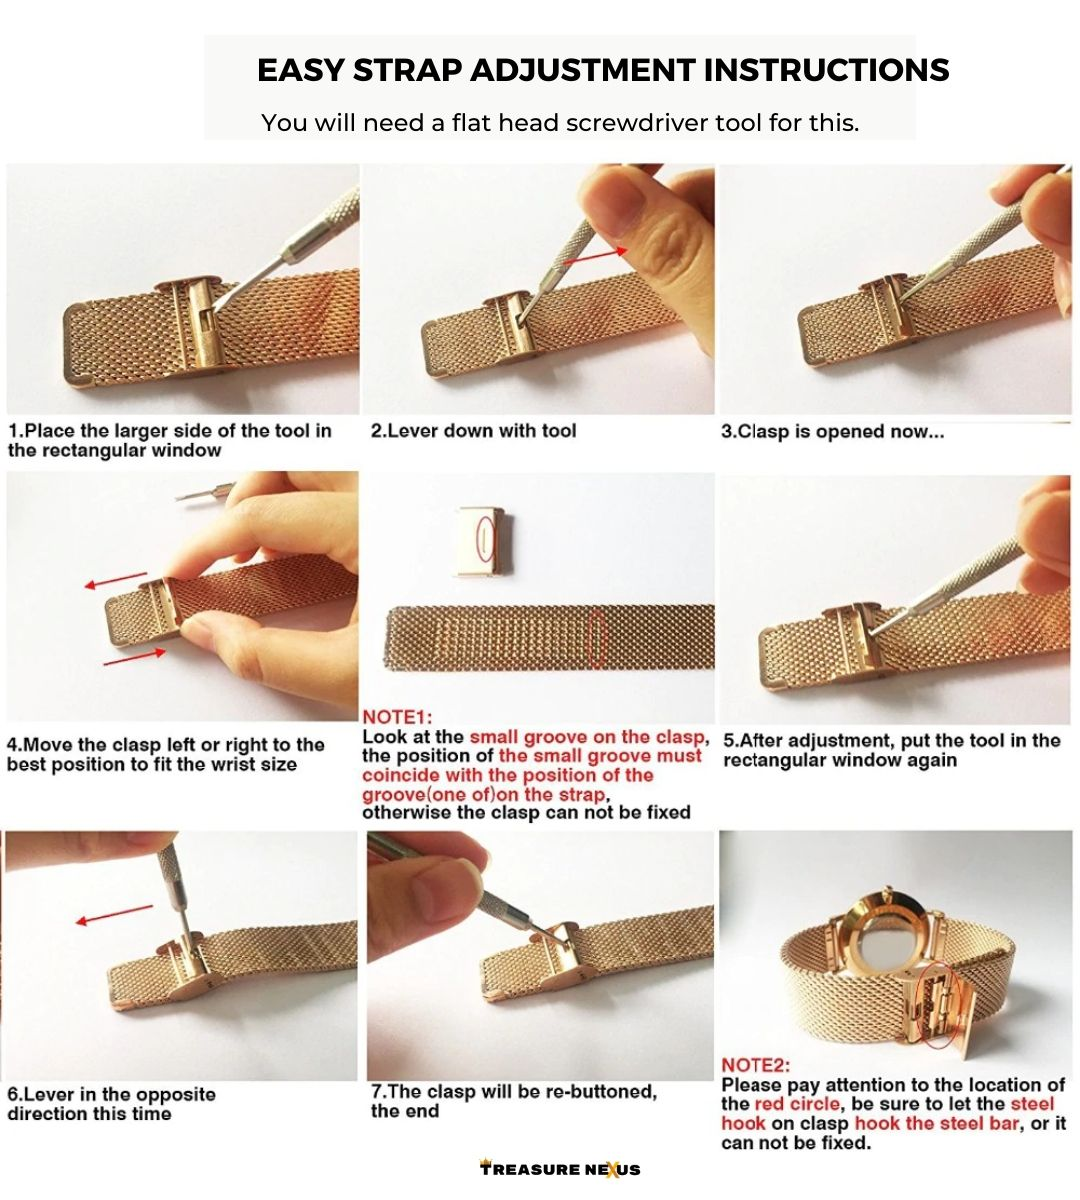 Adjusting strap length (for specific watch bands)